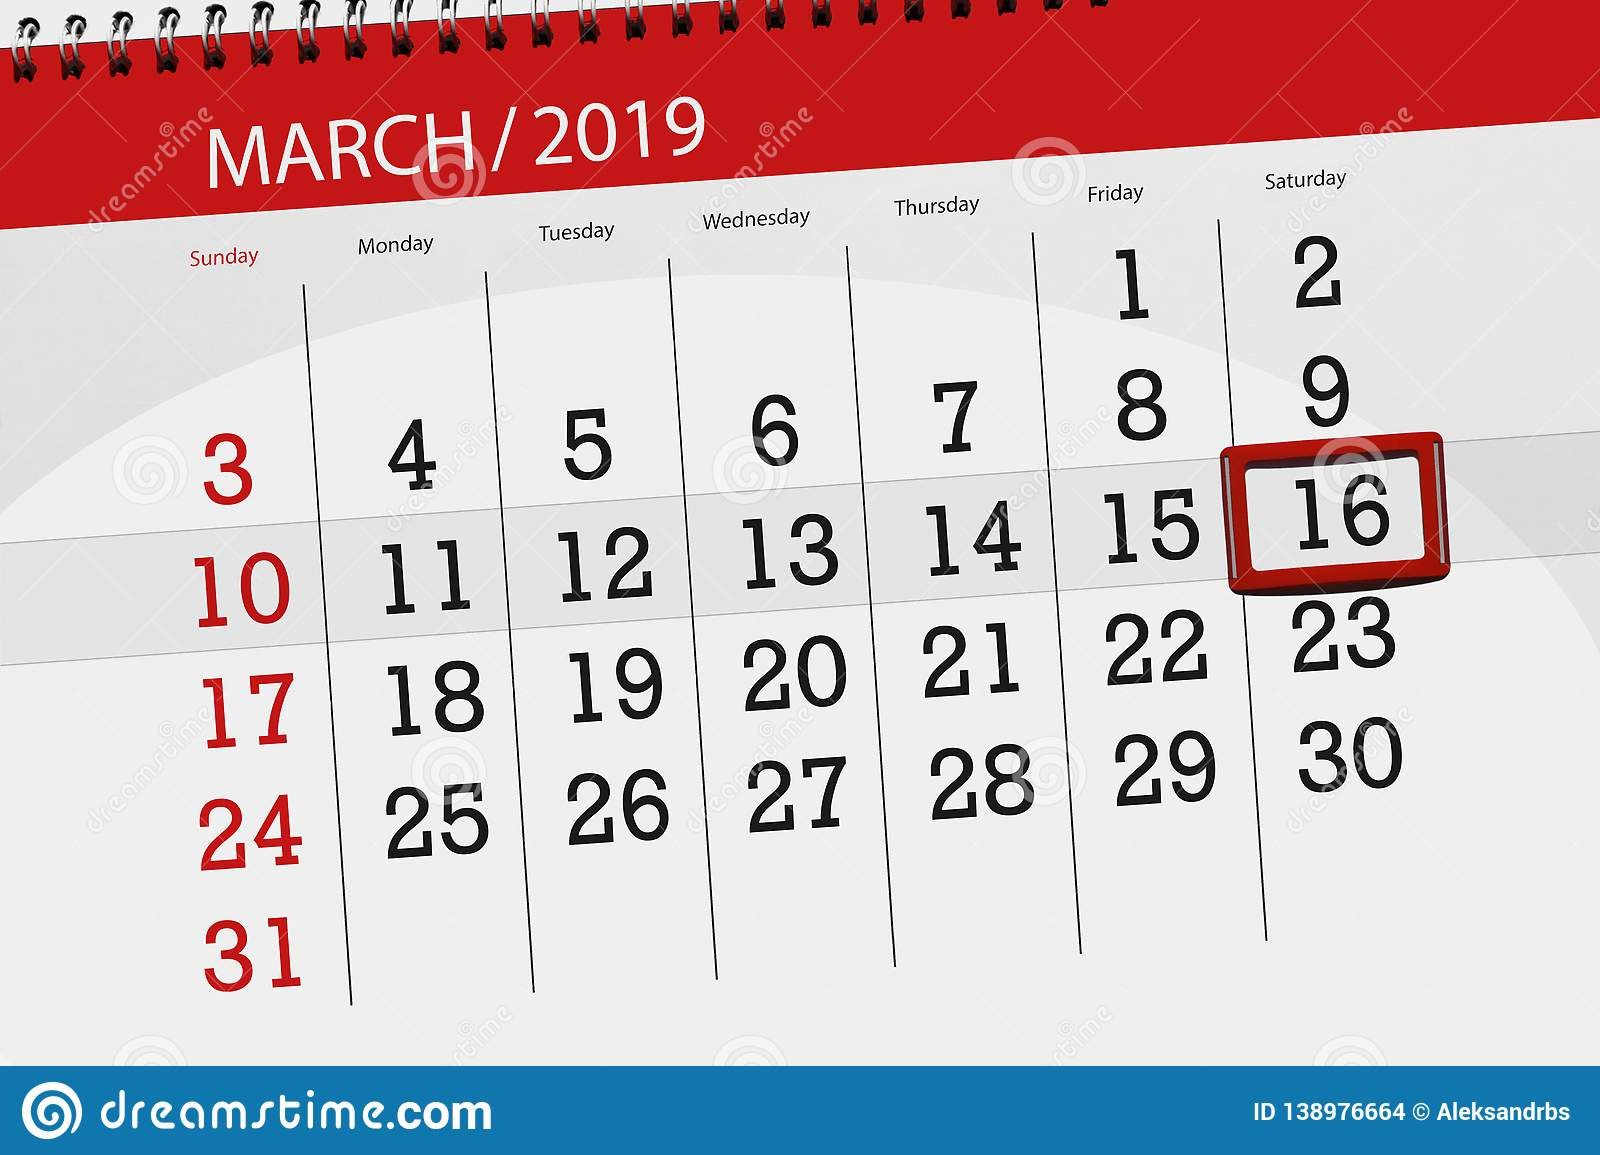 Calendar planner for the month march 2019, deadline day, 16 saturday. Calendar planner for month march 2019, deadline day, 16 saturday stock images